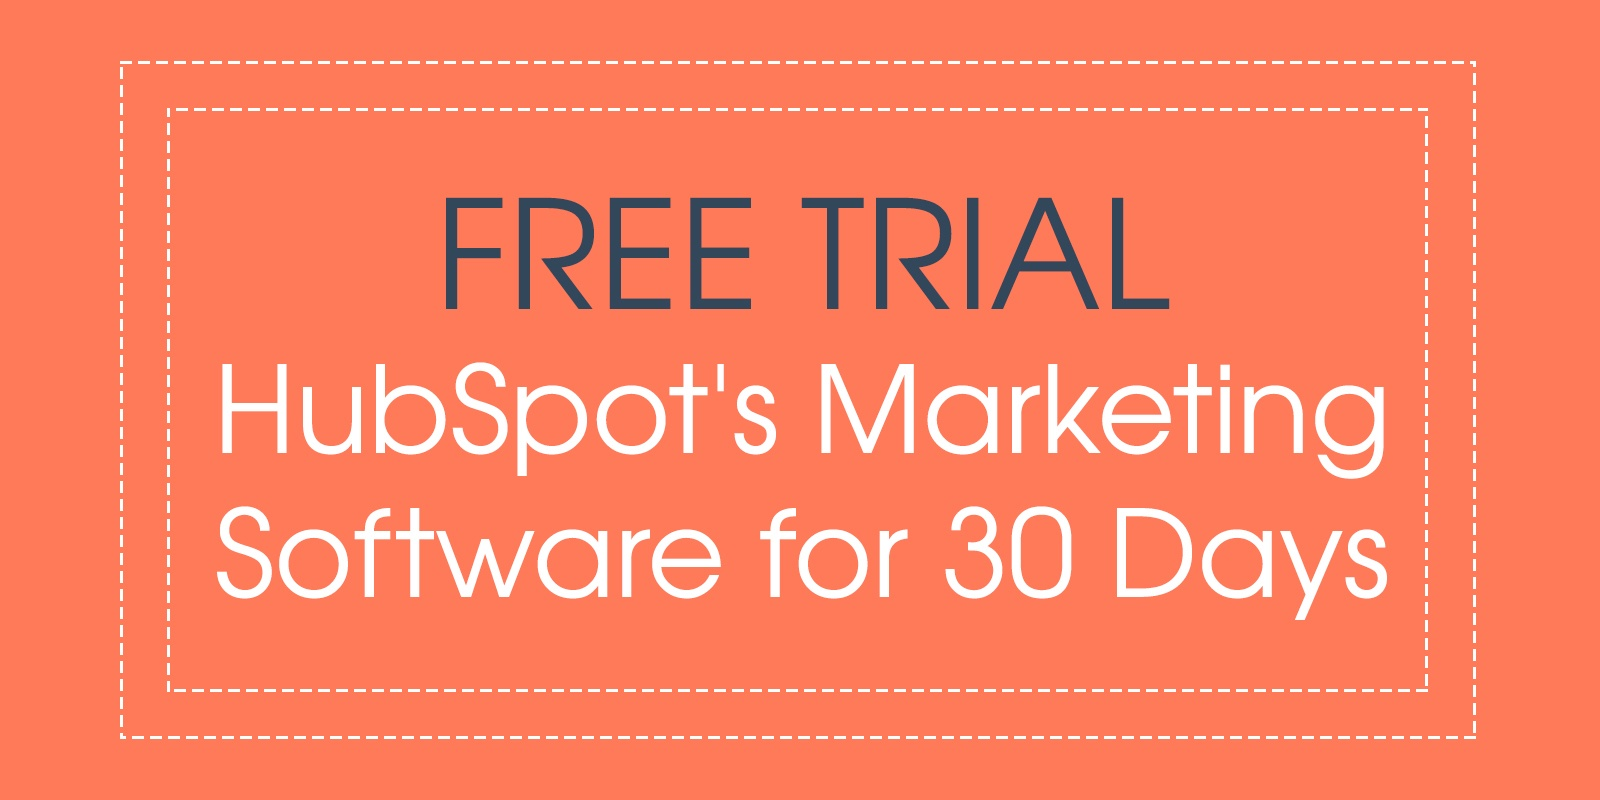 Try HubSpot's Marketing Software Free for 30 Days